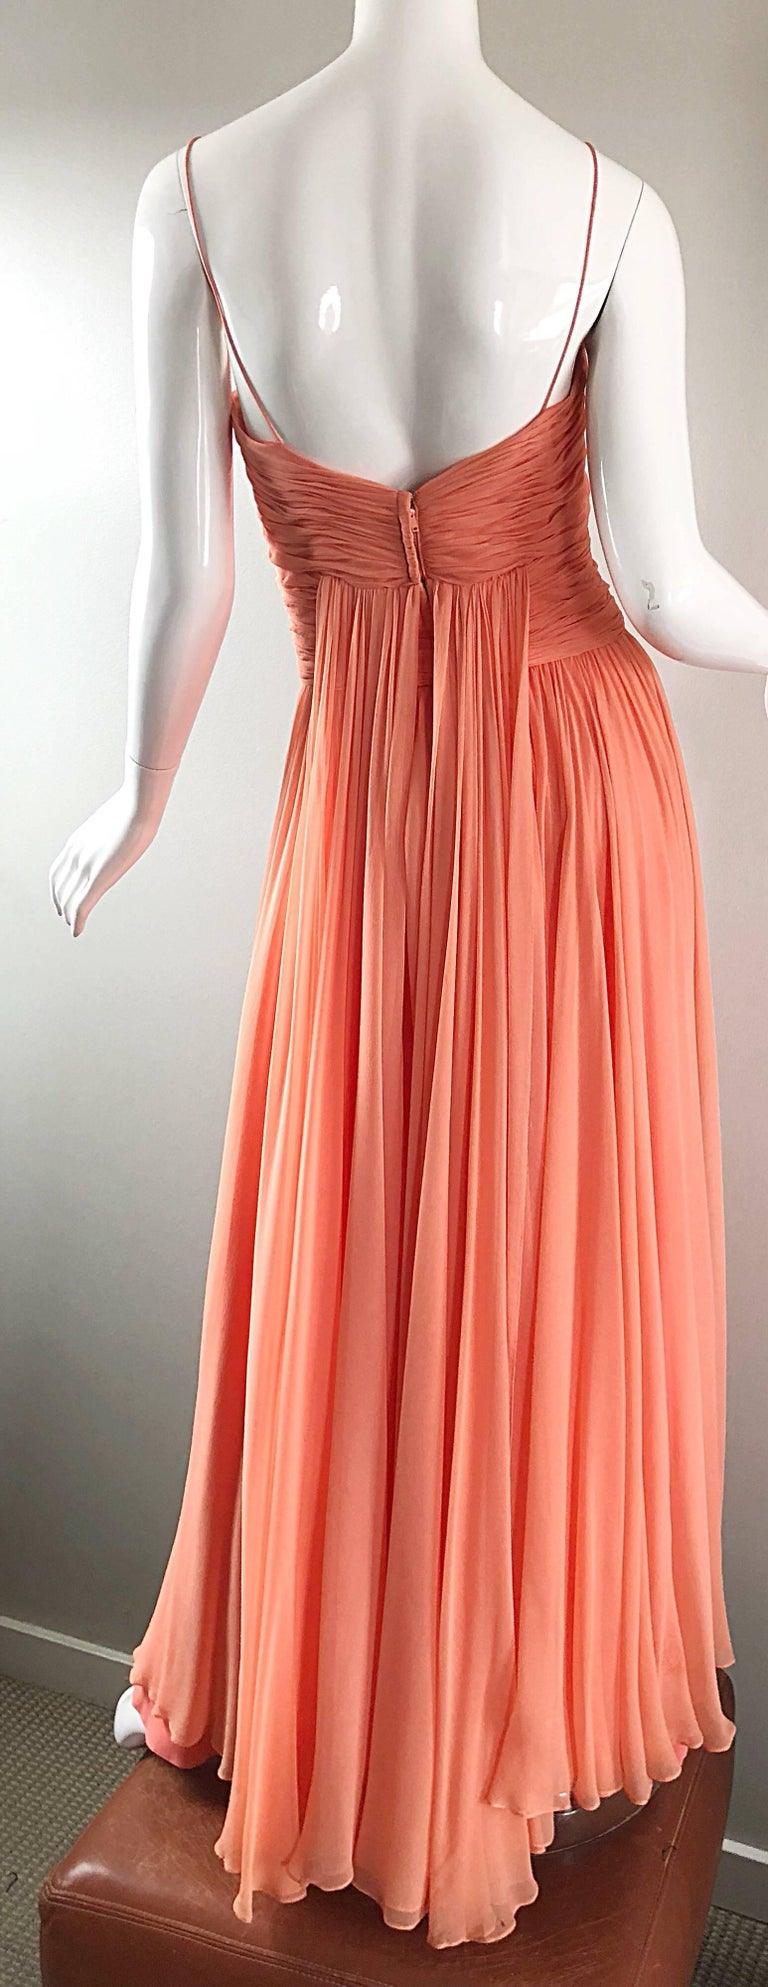 Gorgeous 1950s Saks 5th Ave. Salmon / Coral Pink Silk Chiffon Vintage 50s Gown For Sale 9